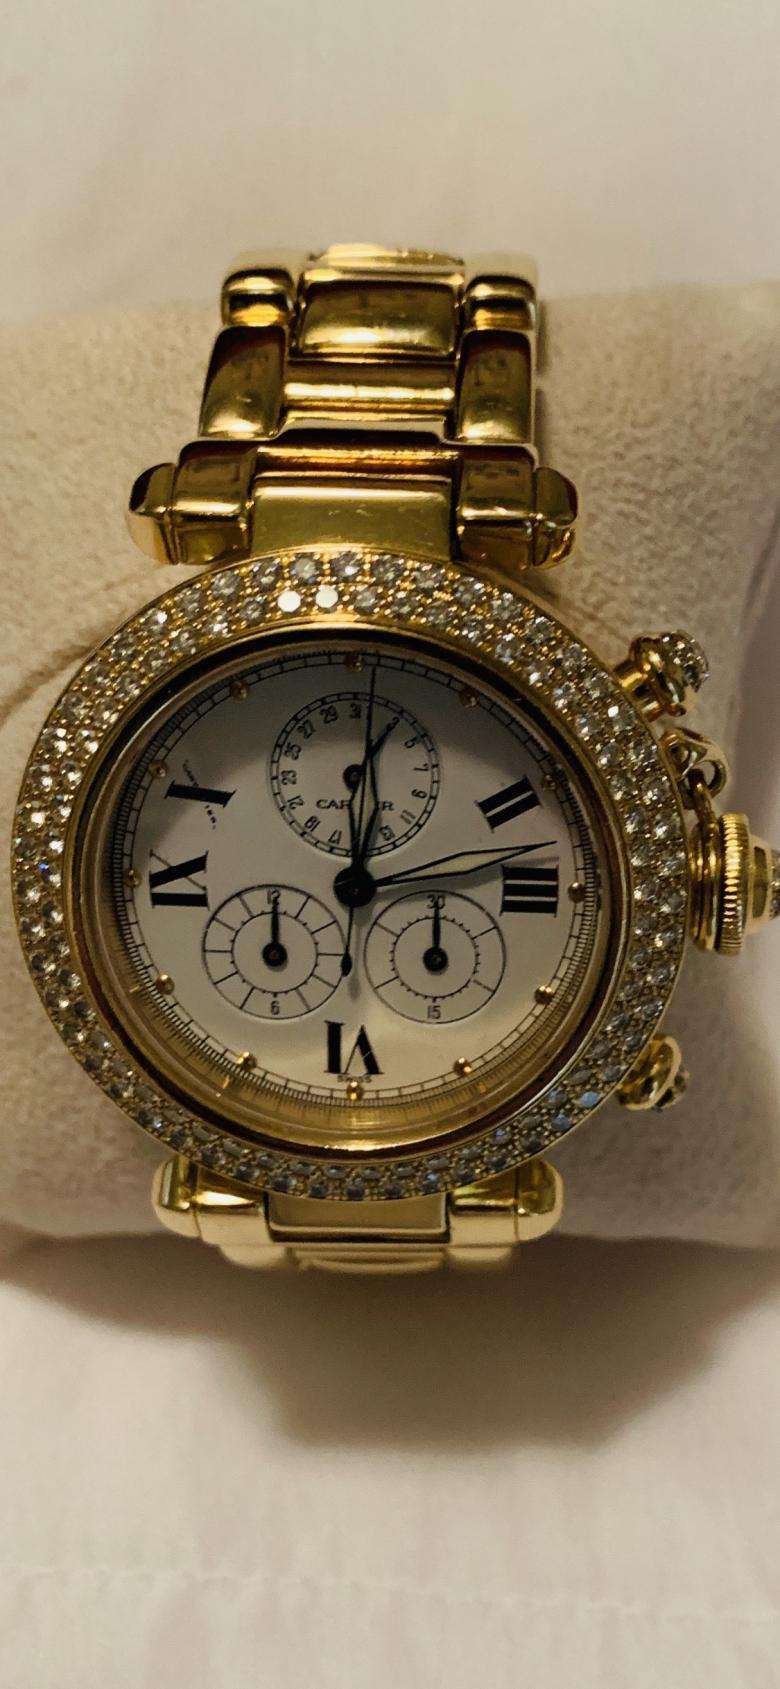 Cartier Lady's 18K gold